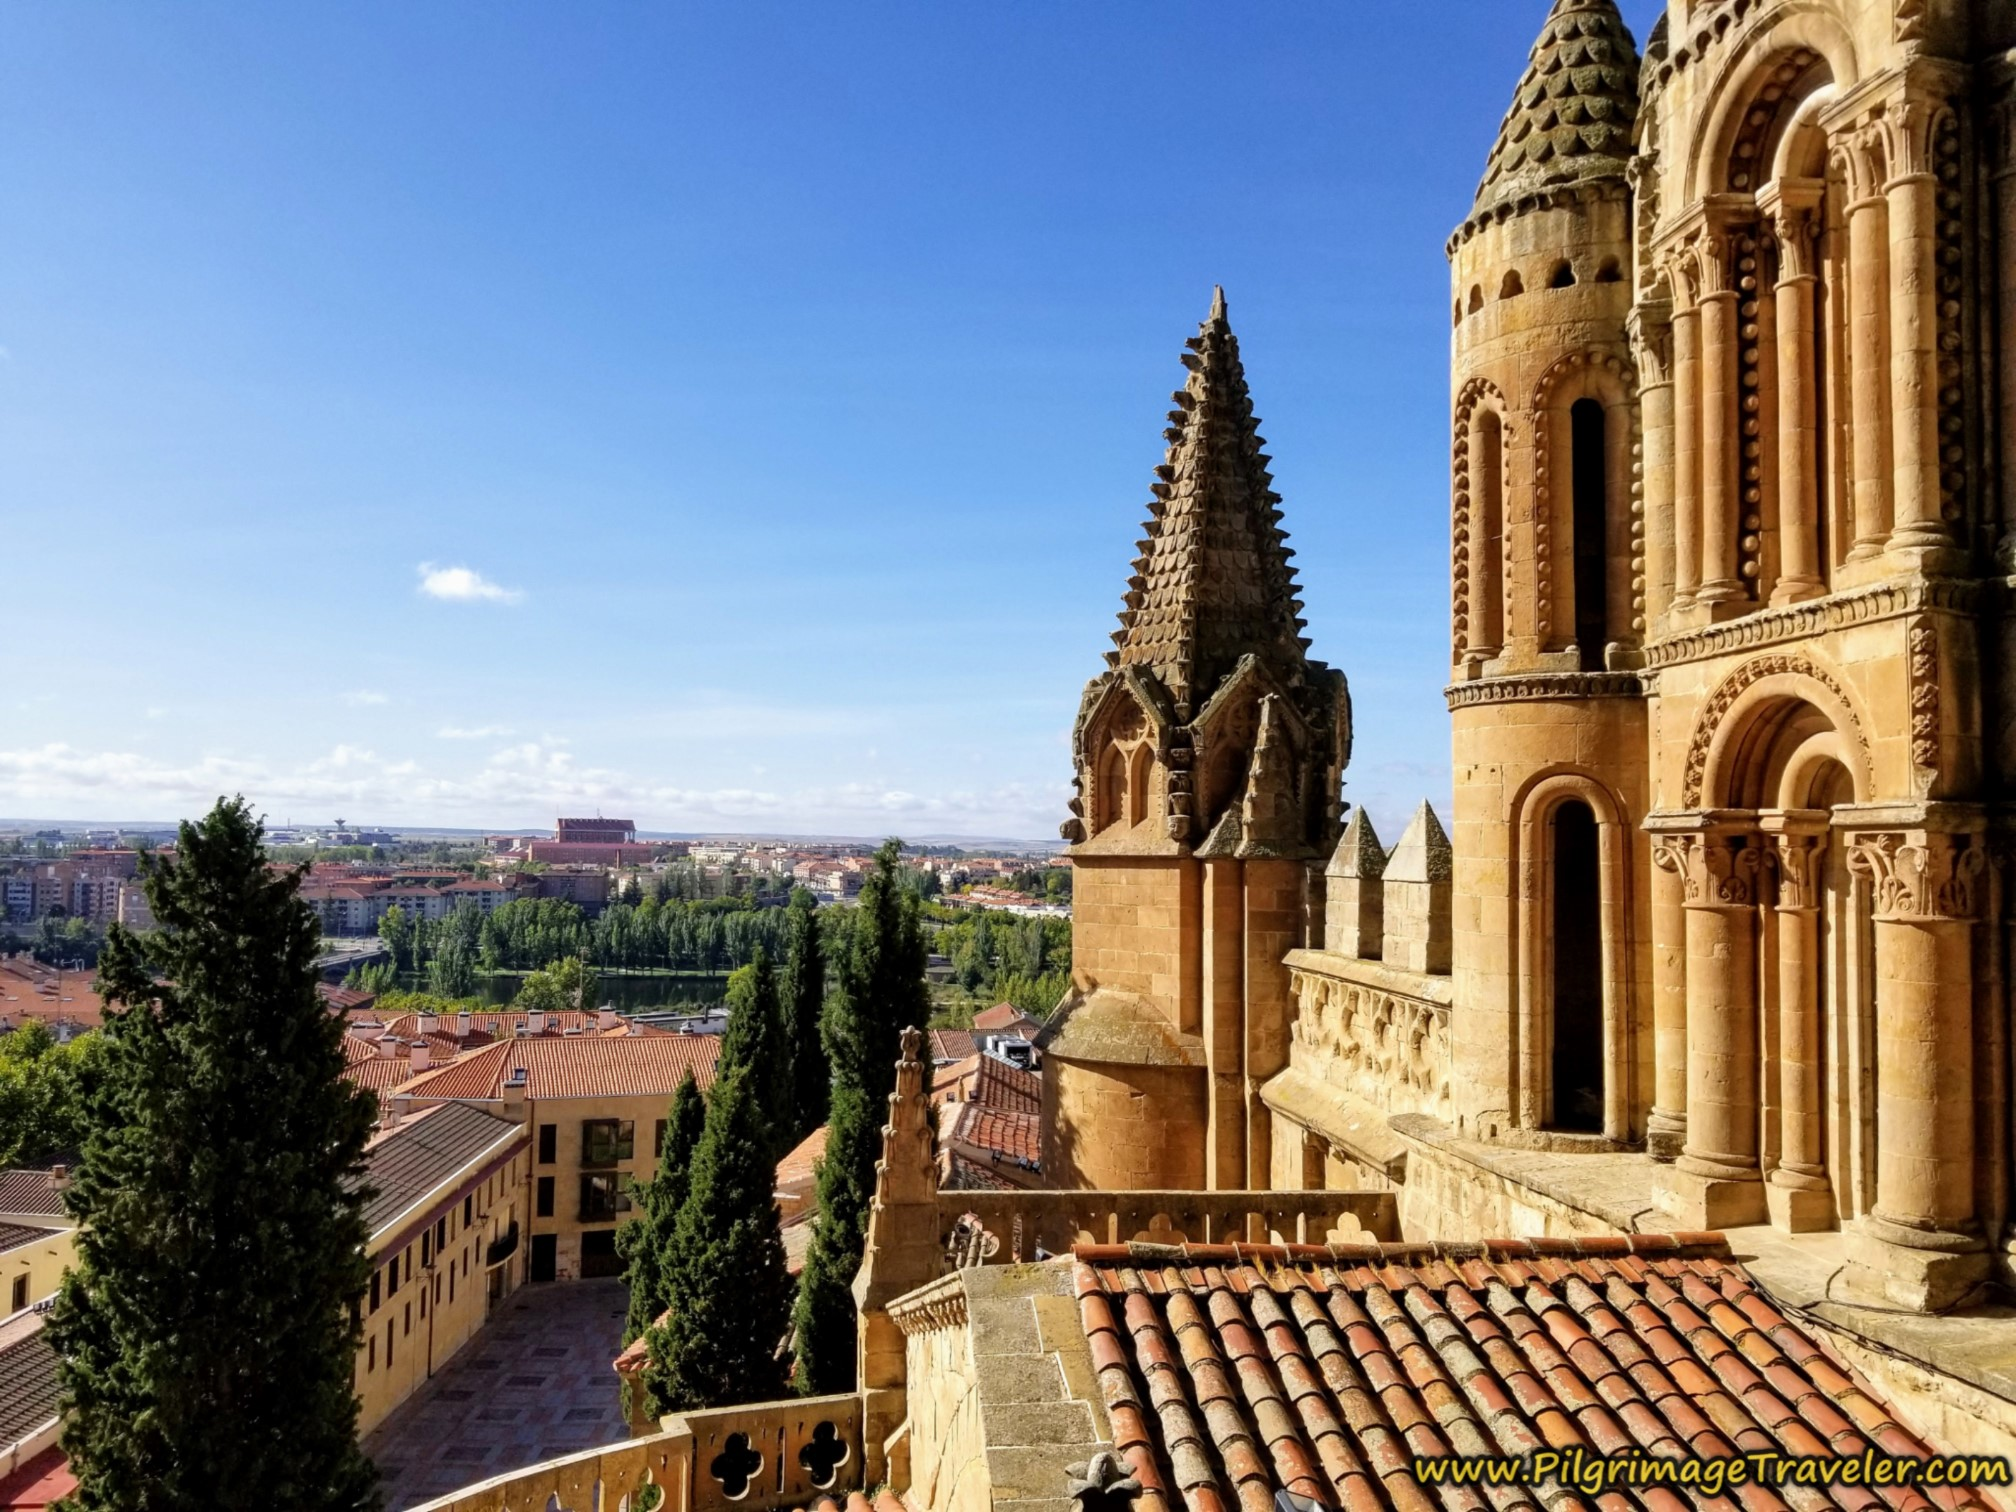 Rooftop View of Salamanca Towards the River, from the Ieronimos Tower tour